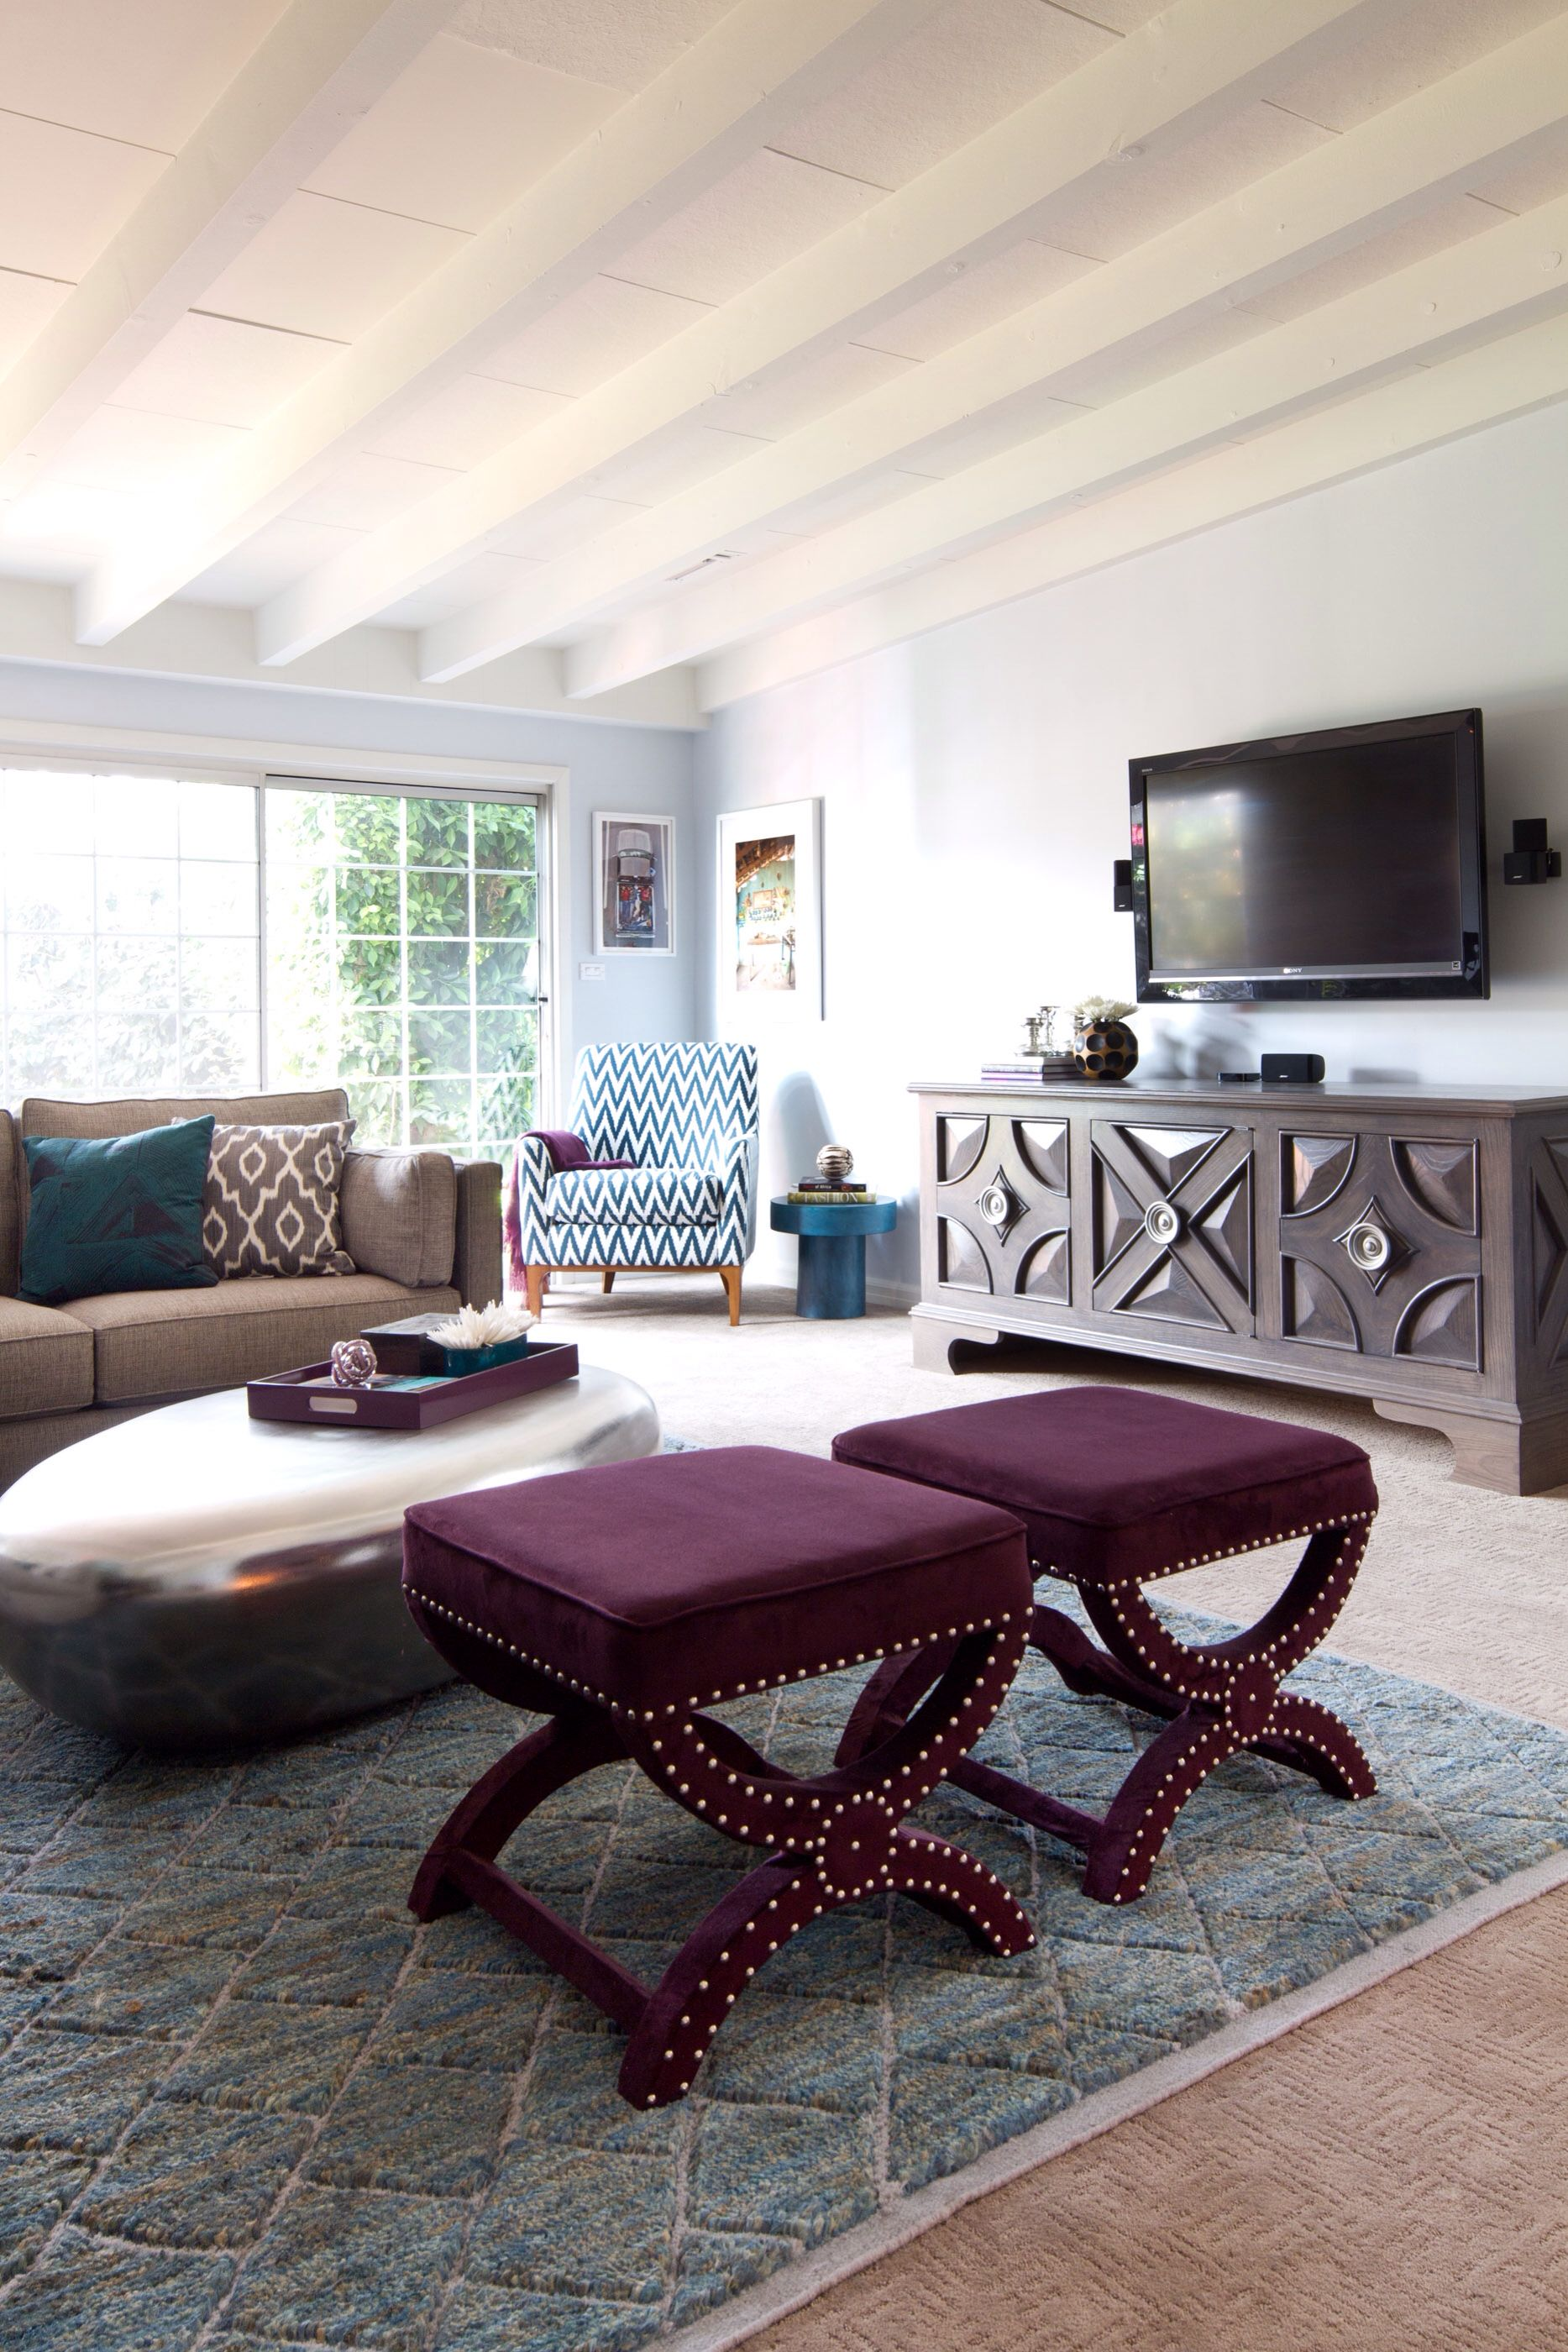 Formal Living Room Interior Design: Living Room With Teal And Plum Accents. Designed By Shirry